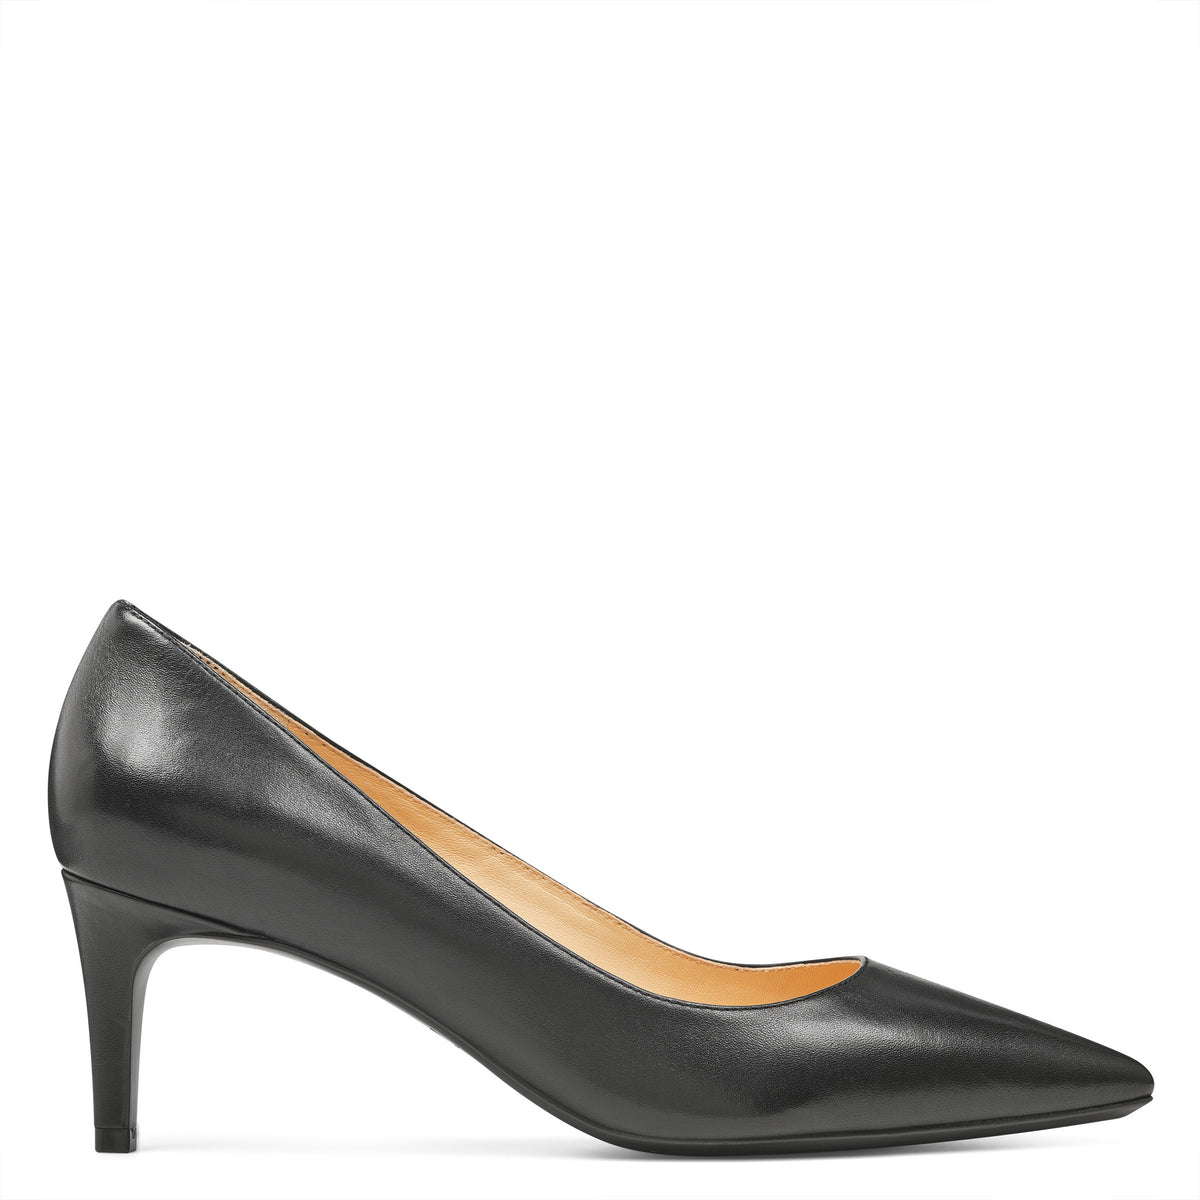 Soho Pointy Toe Pumps